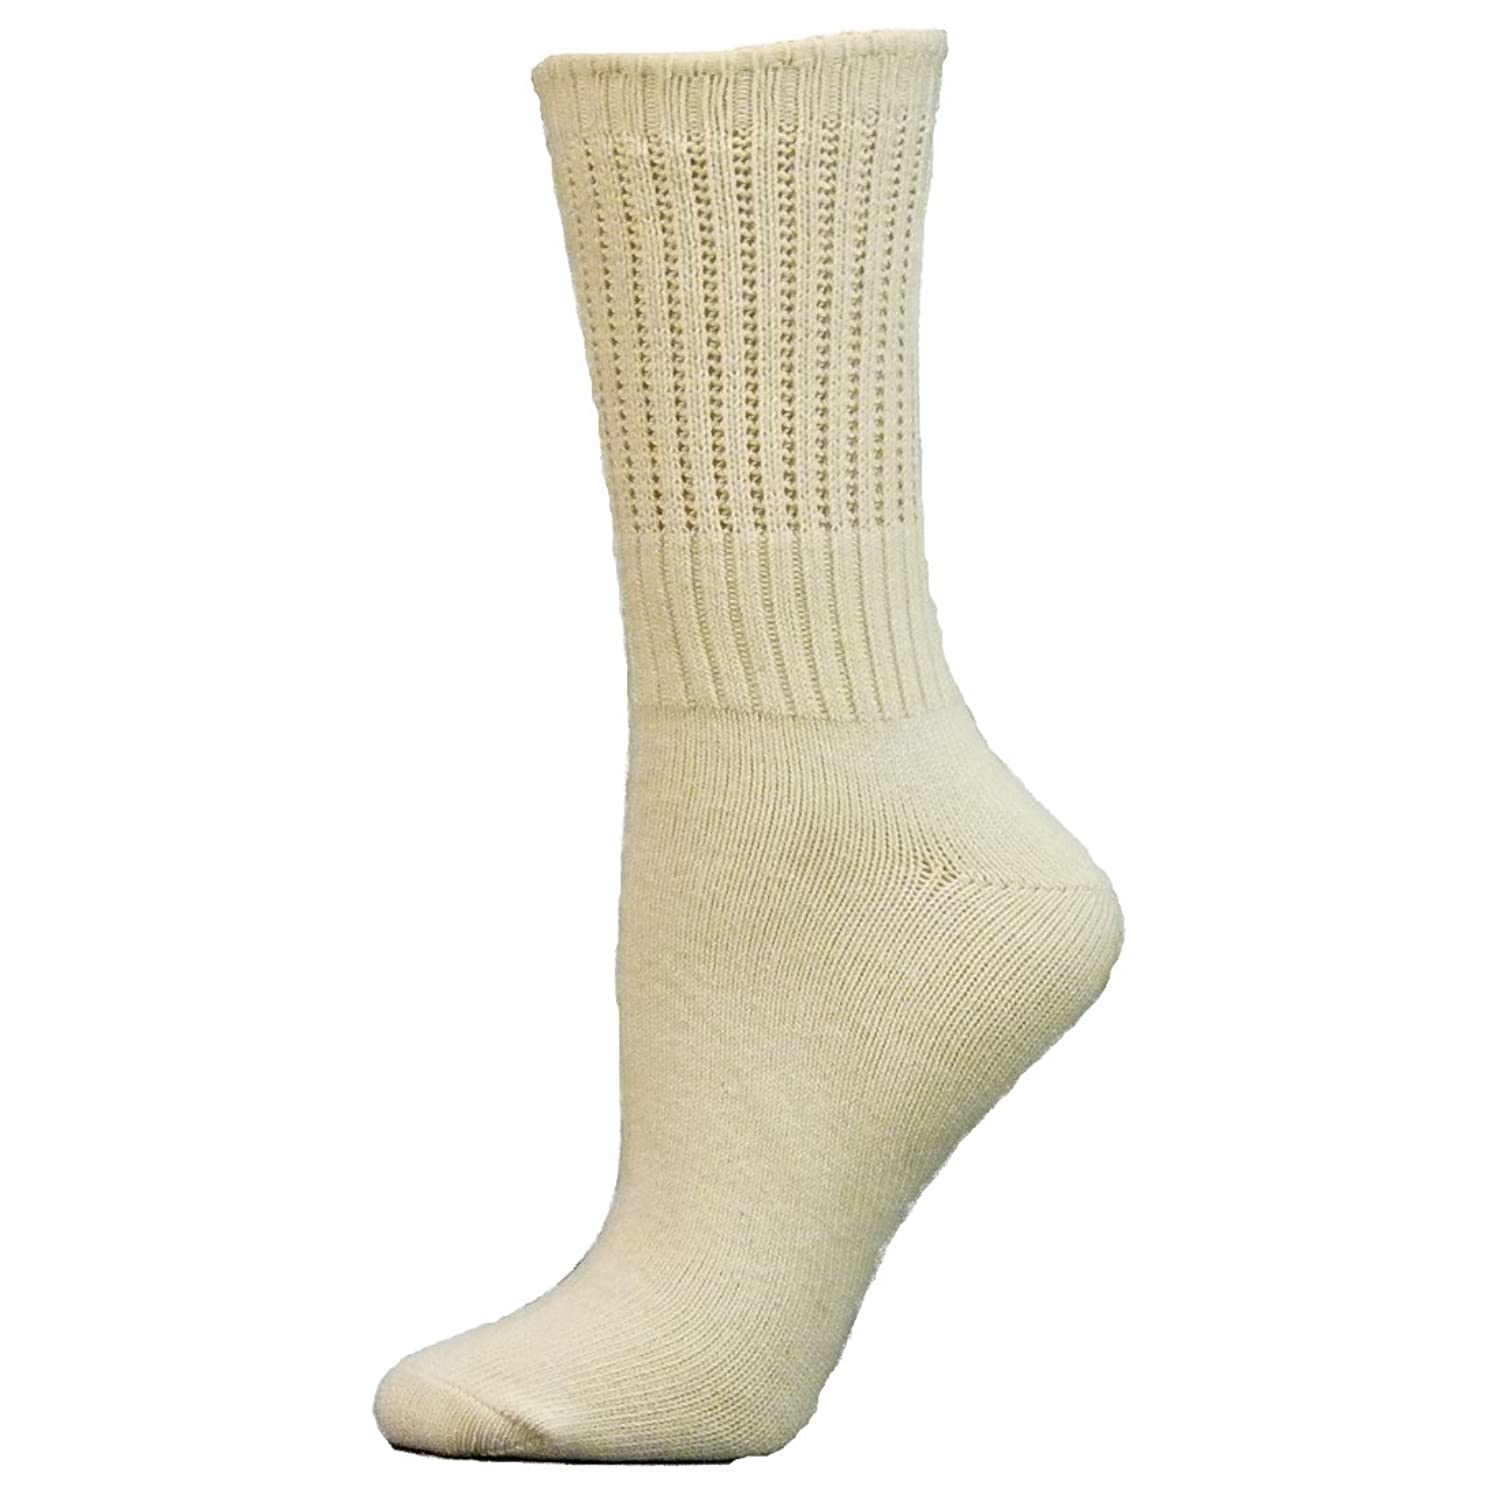 2 Brothers Nuby Organic Cotton Crew Womens Socks